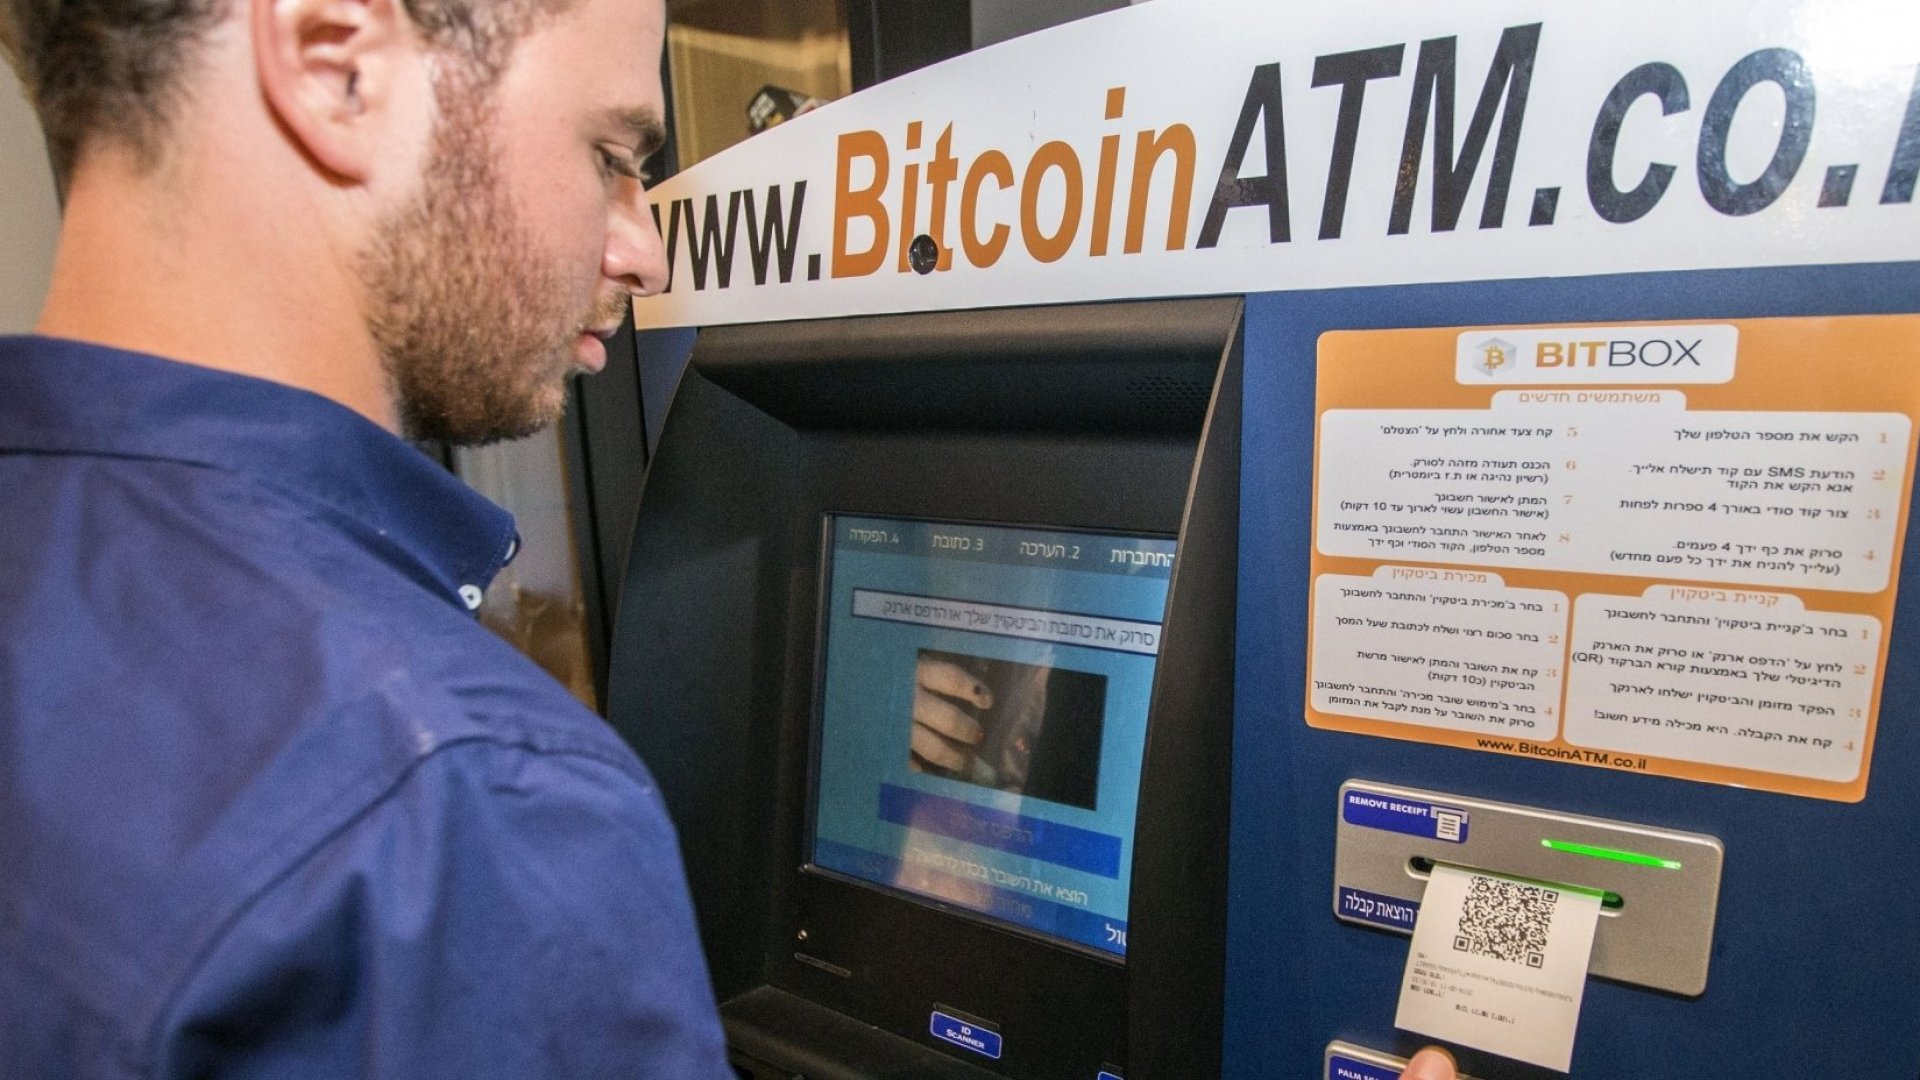 4 Things You Really Need To Know Before You Buy Bitcoin